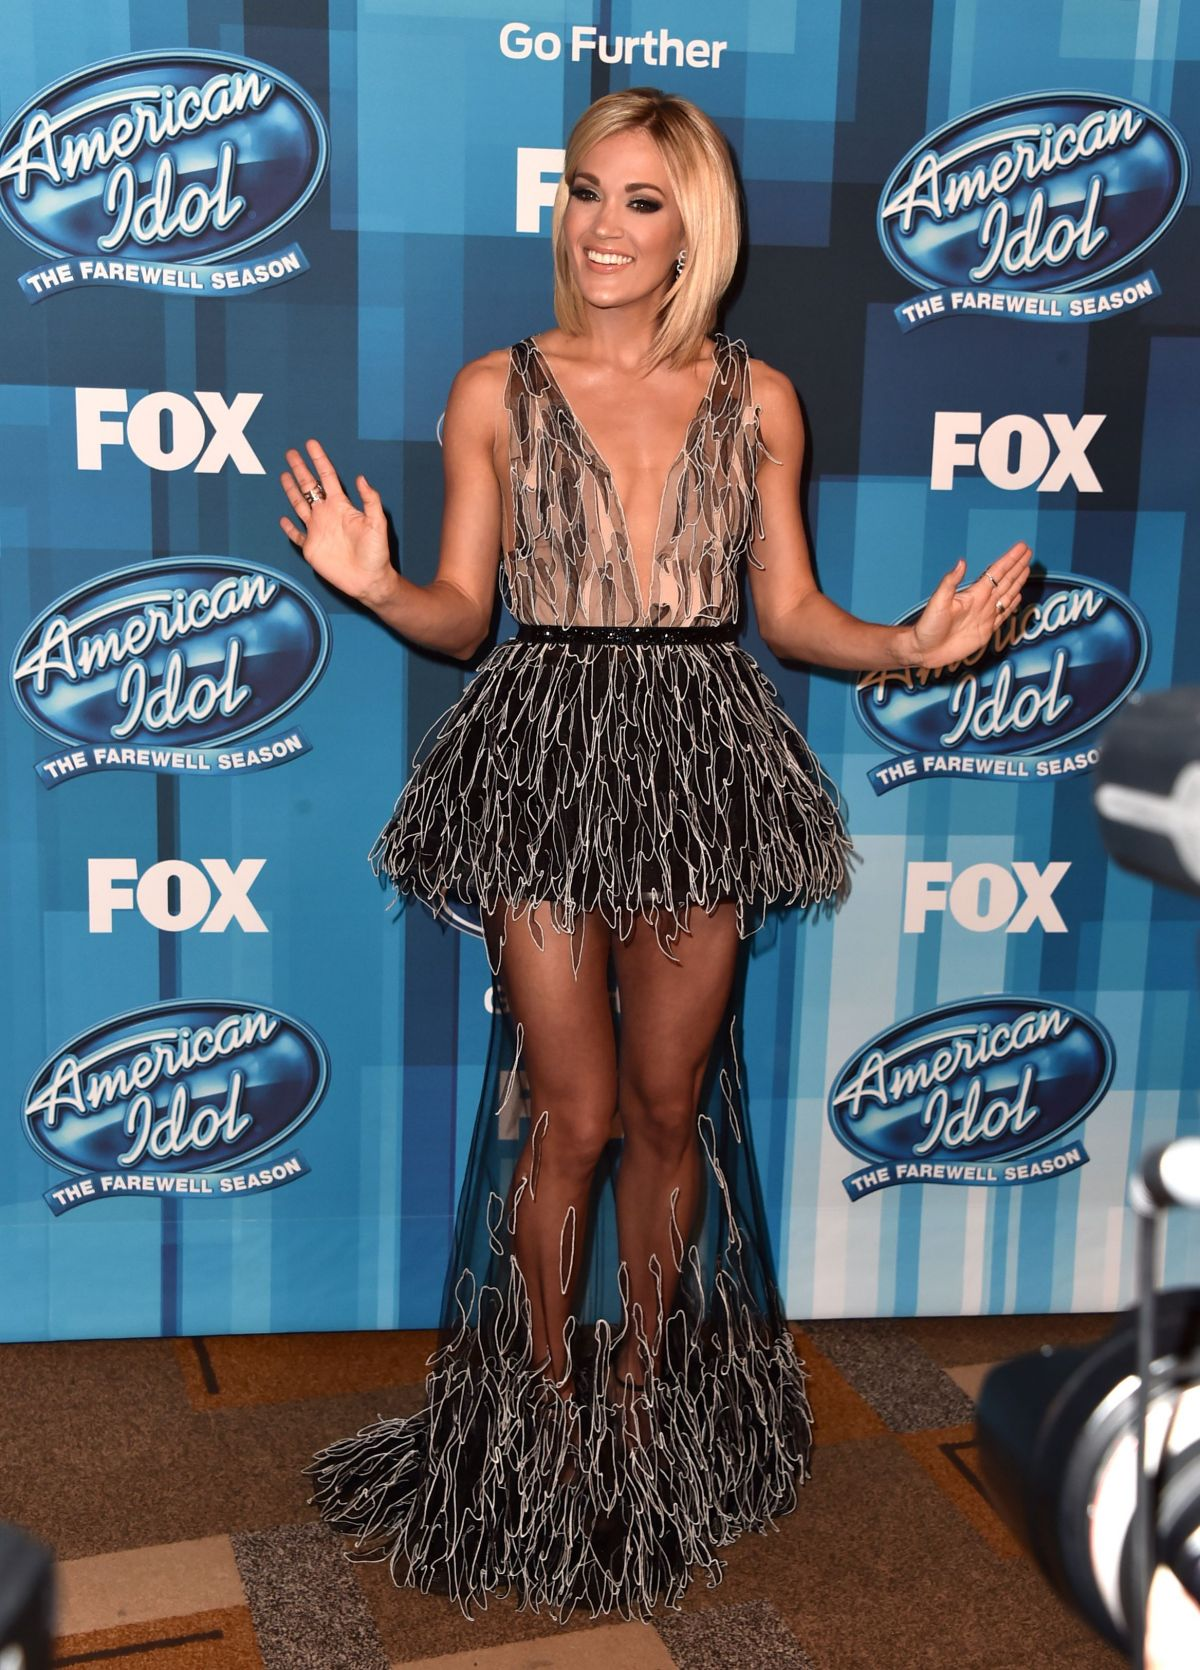 CARRIE UNDERWOOD at American Idol Finale for the Farewell Season in Hollywood 04/07/2016